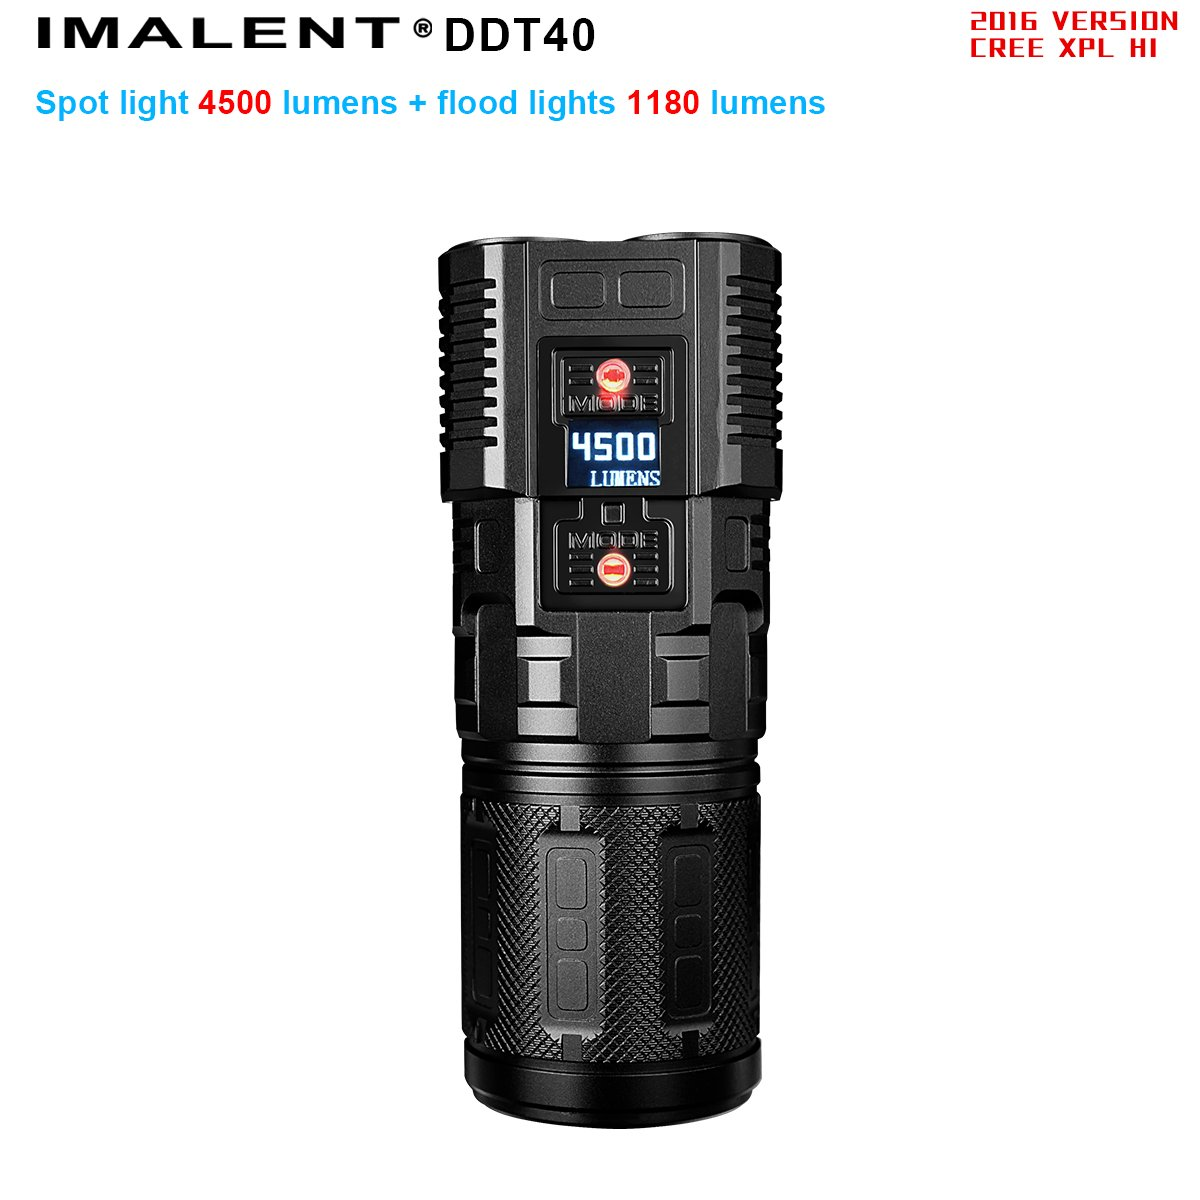 IMALENT DDT40W CREE XP-L HI neutral white LED portable high powerful flashlight 4500lumens with side 1180lumens warm white lights perfect for camping and photography